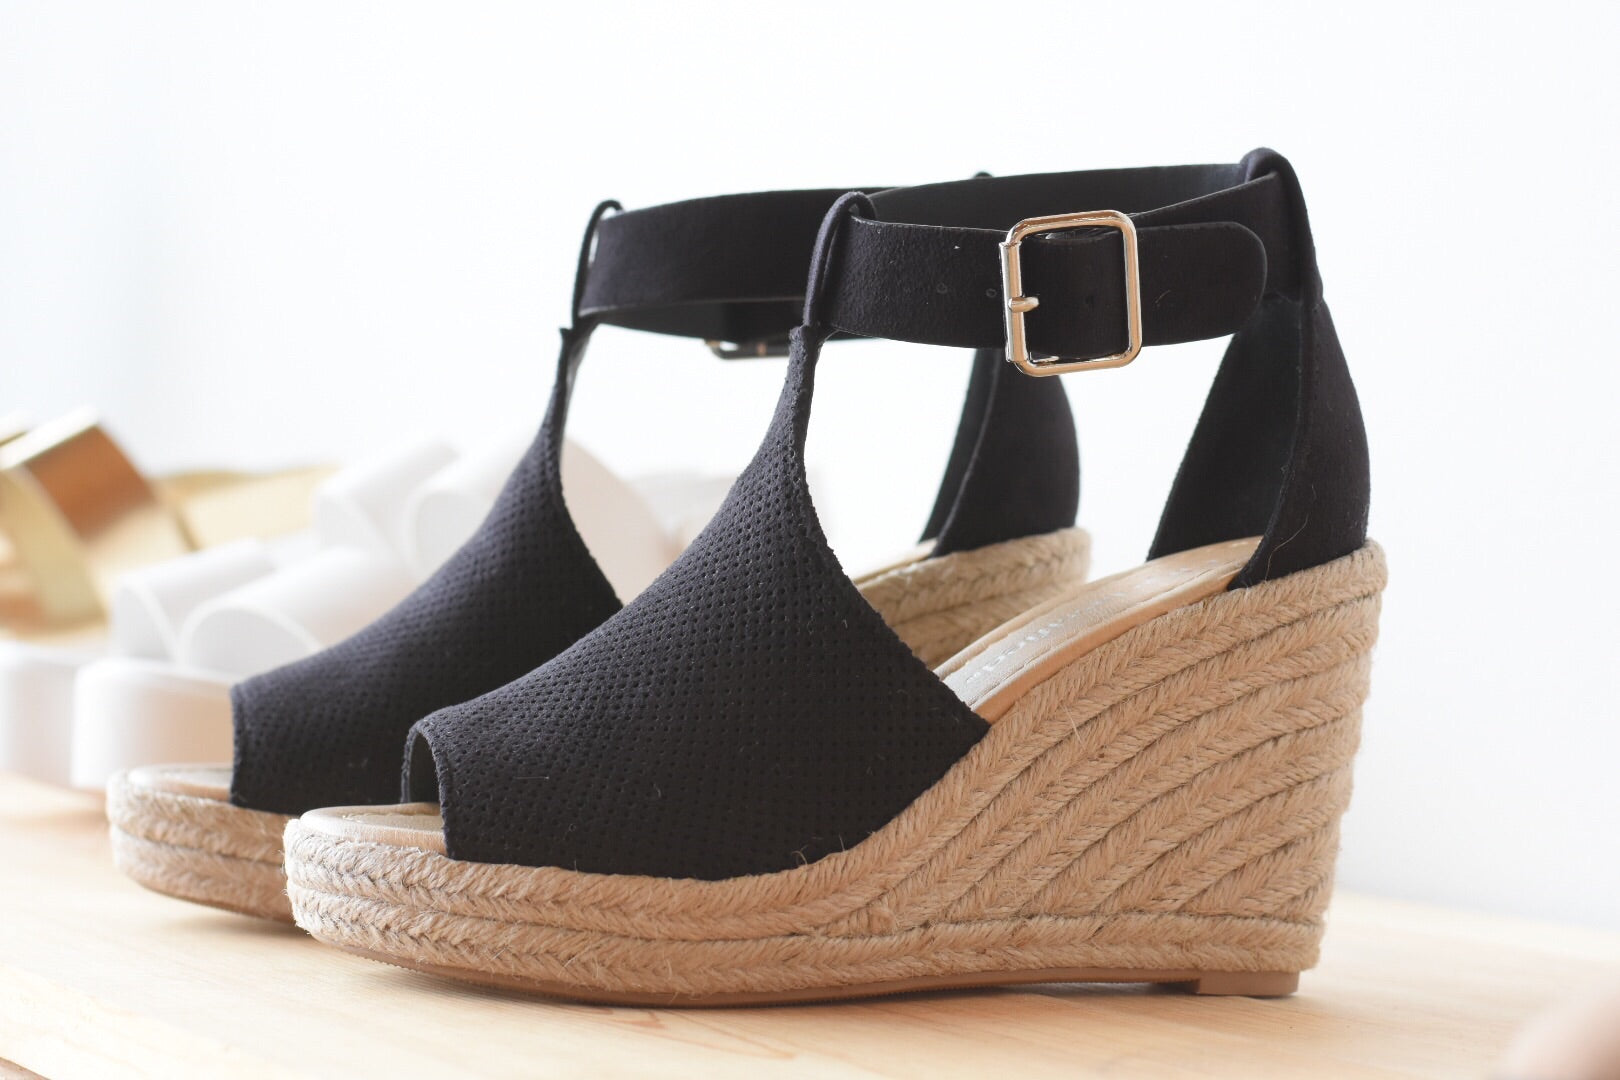 mode, top knotch wedge